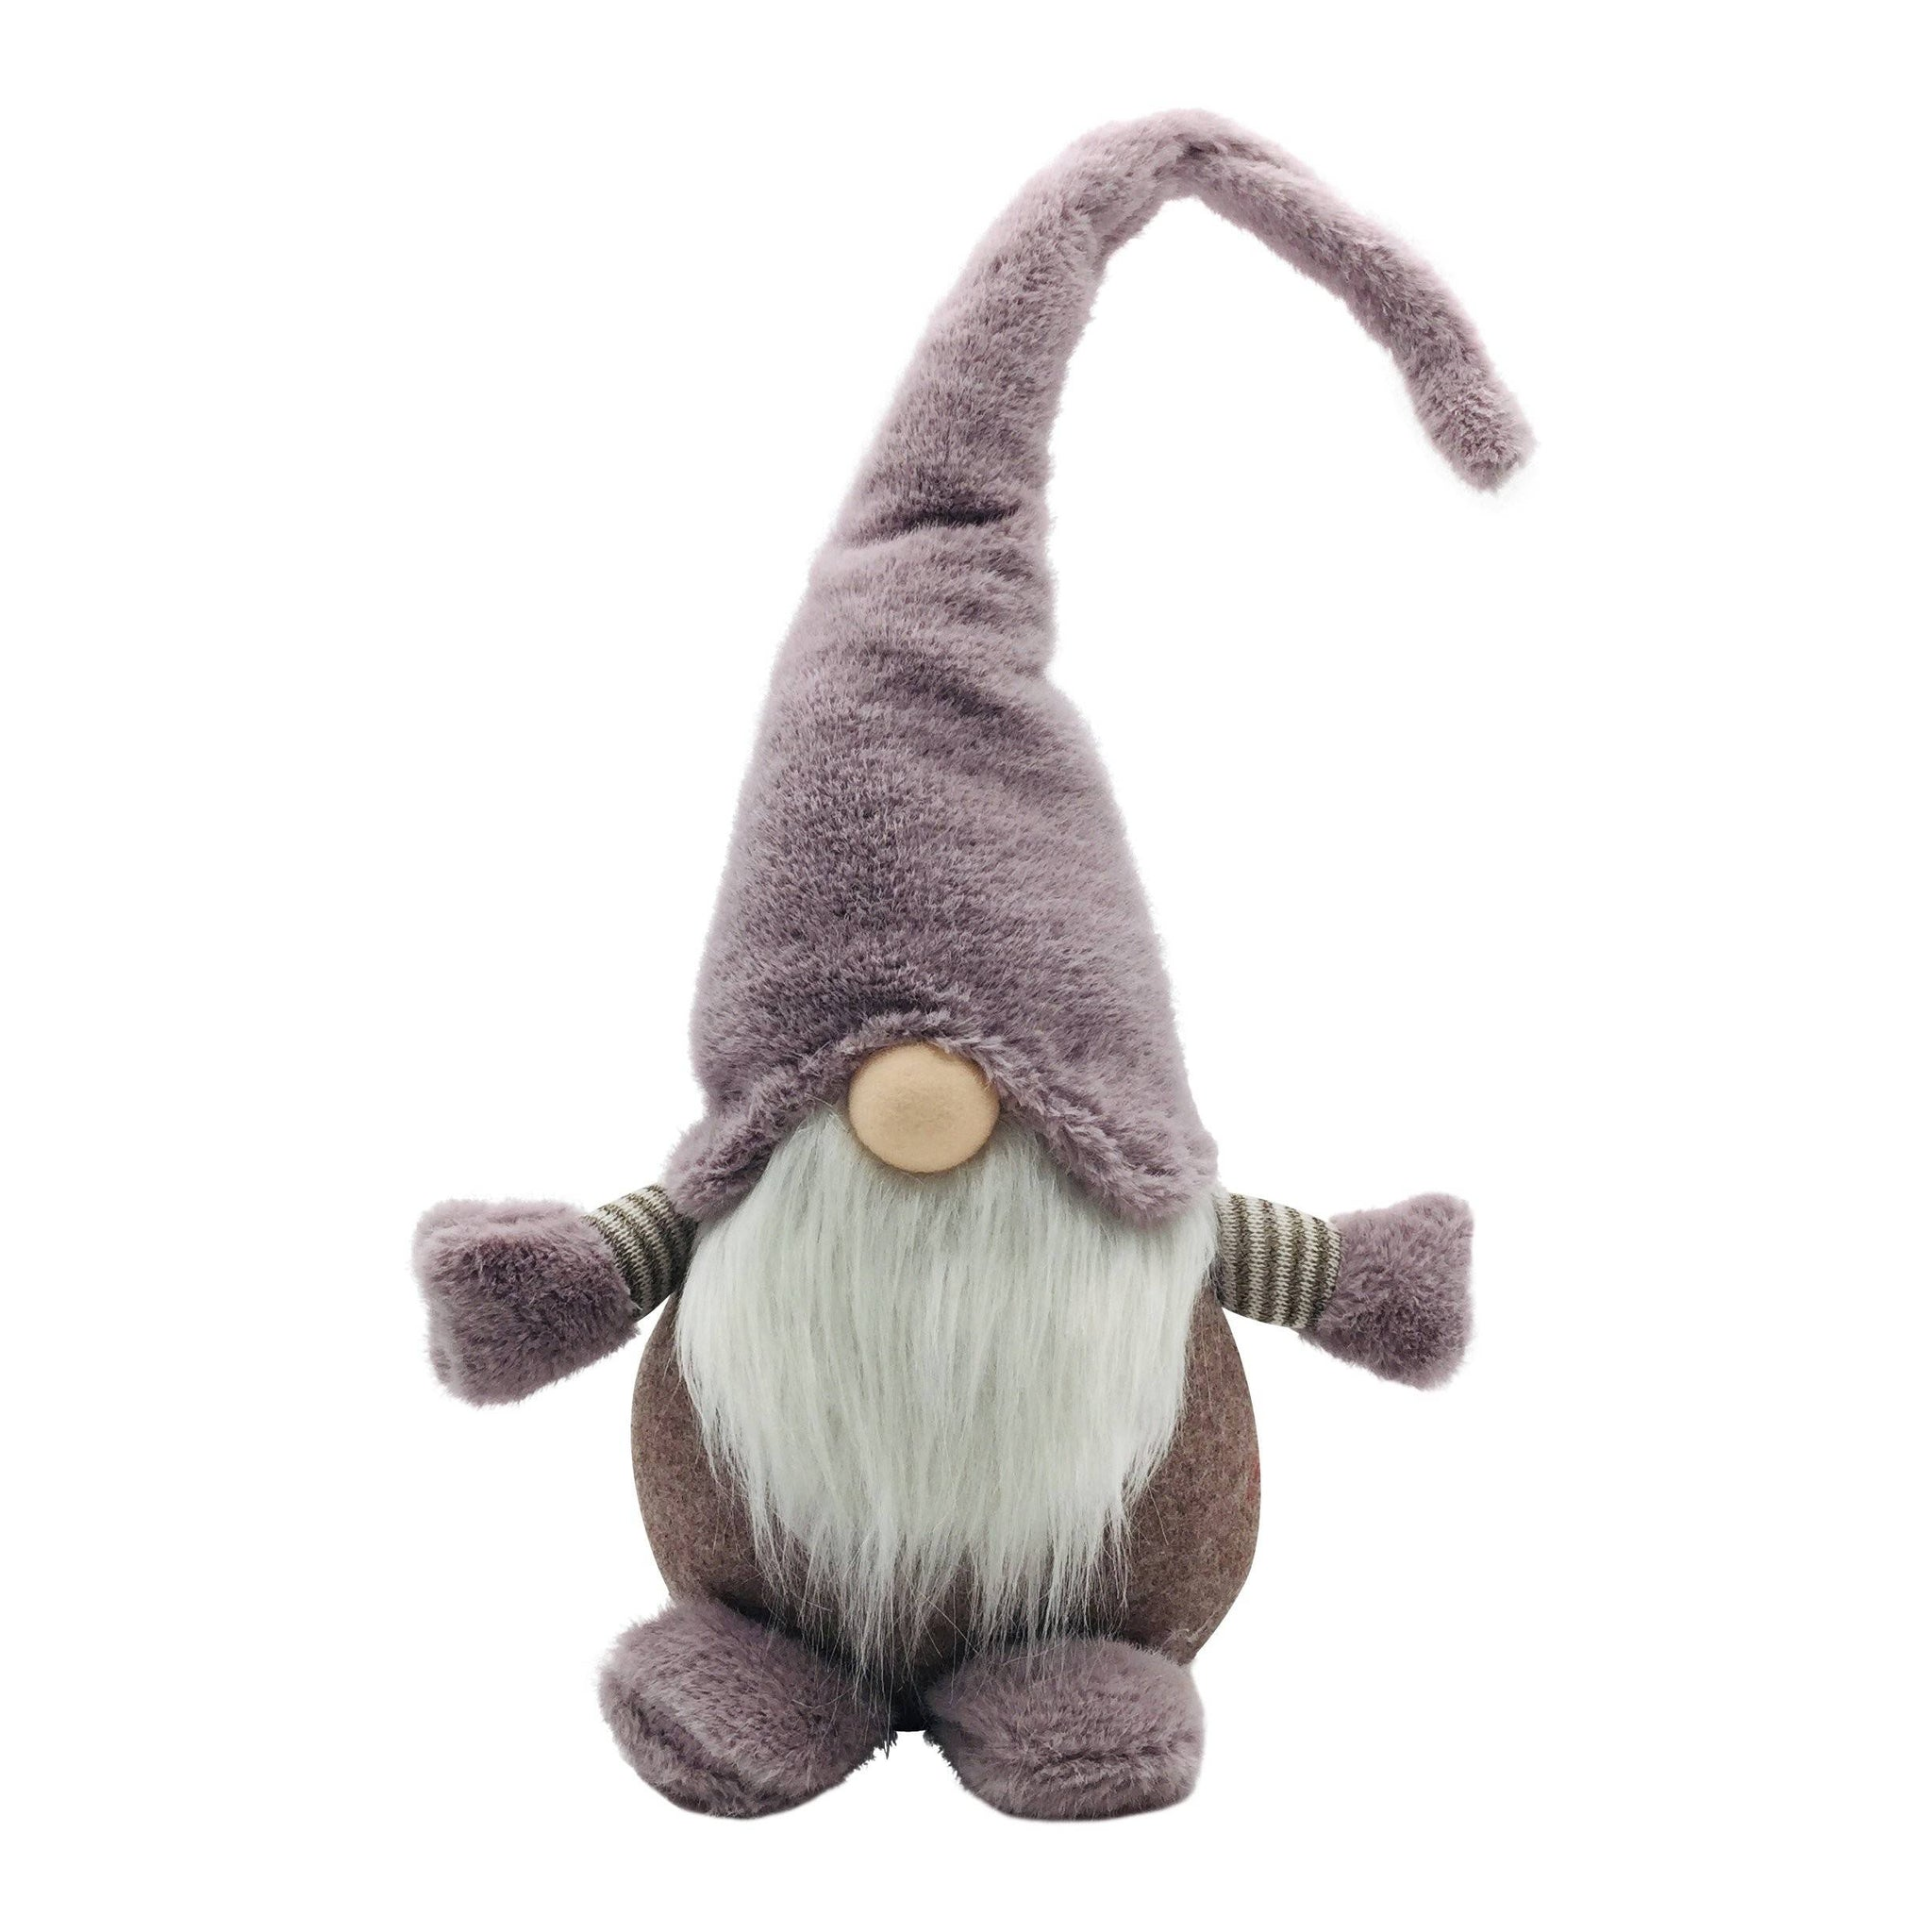 PURPLE FURRFABRIC GNOME